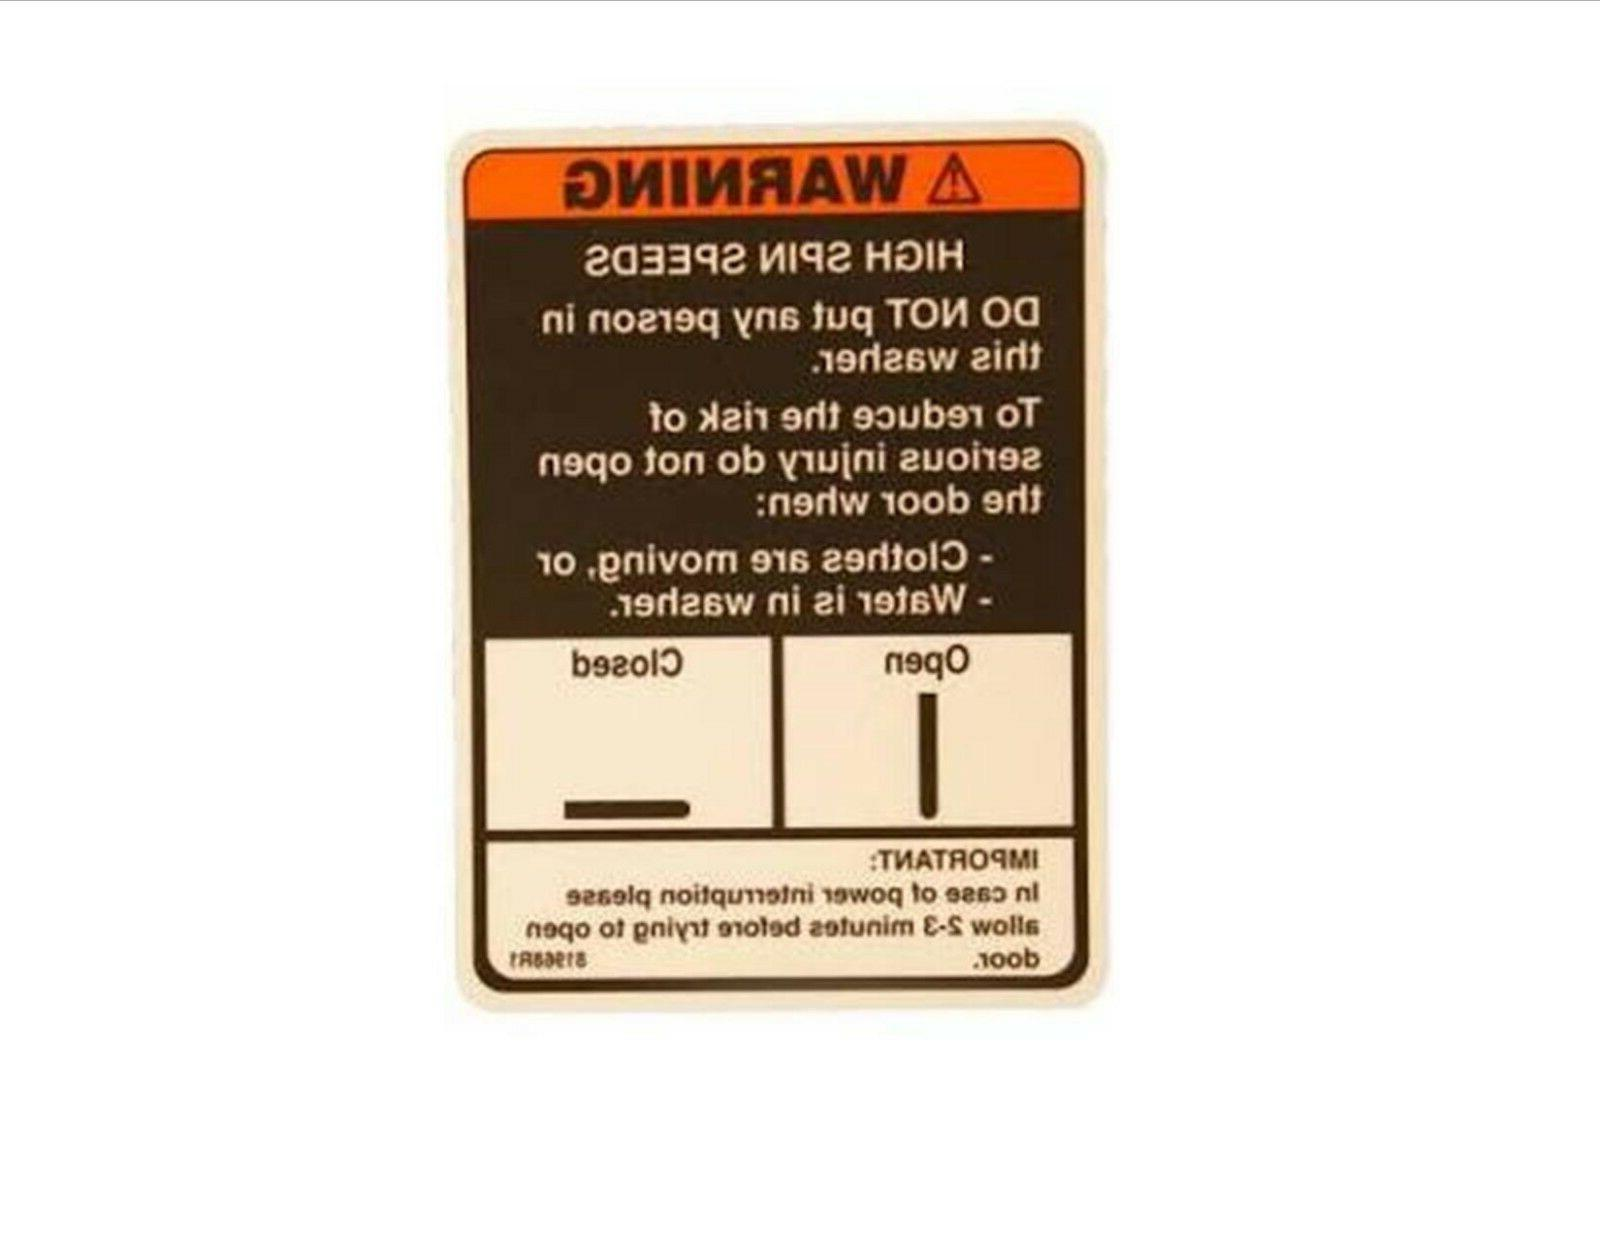 81968r1 washer door warning decal alliance laundry